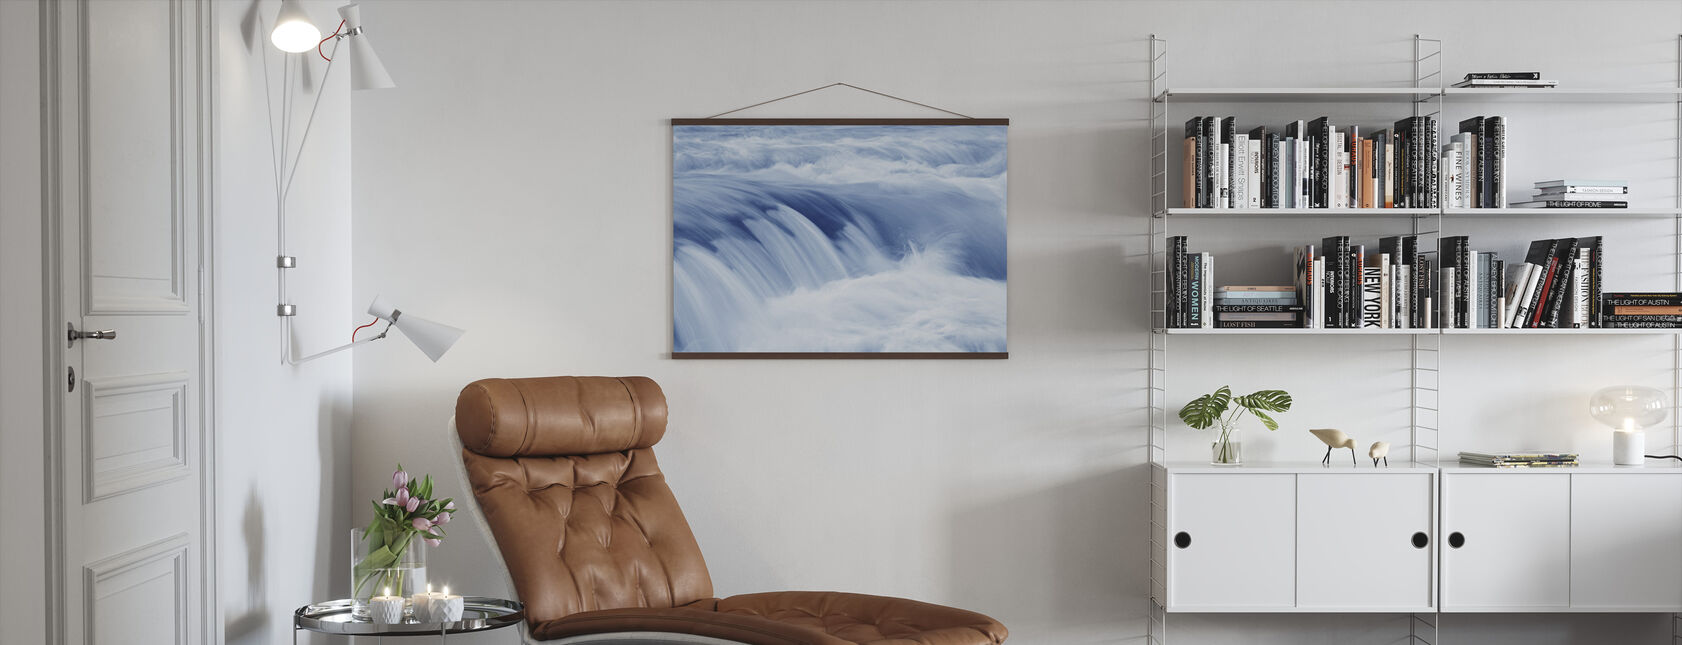 Swiftly Moving Stream - Poster - Living Room